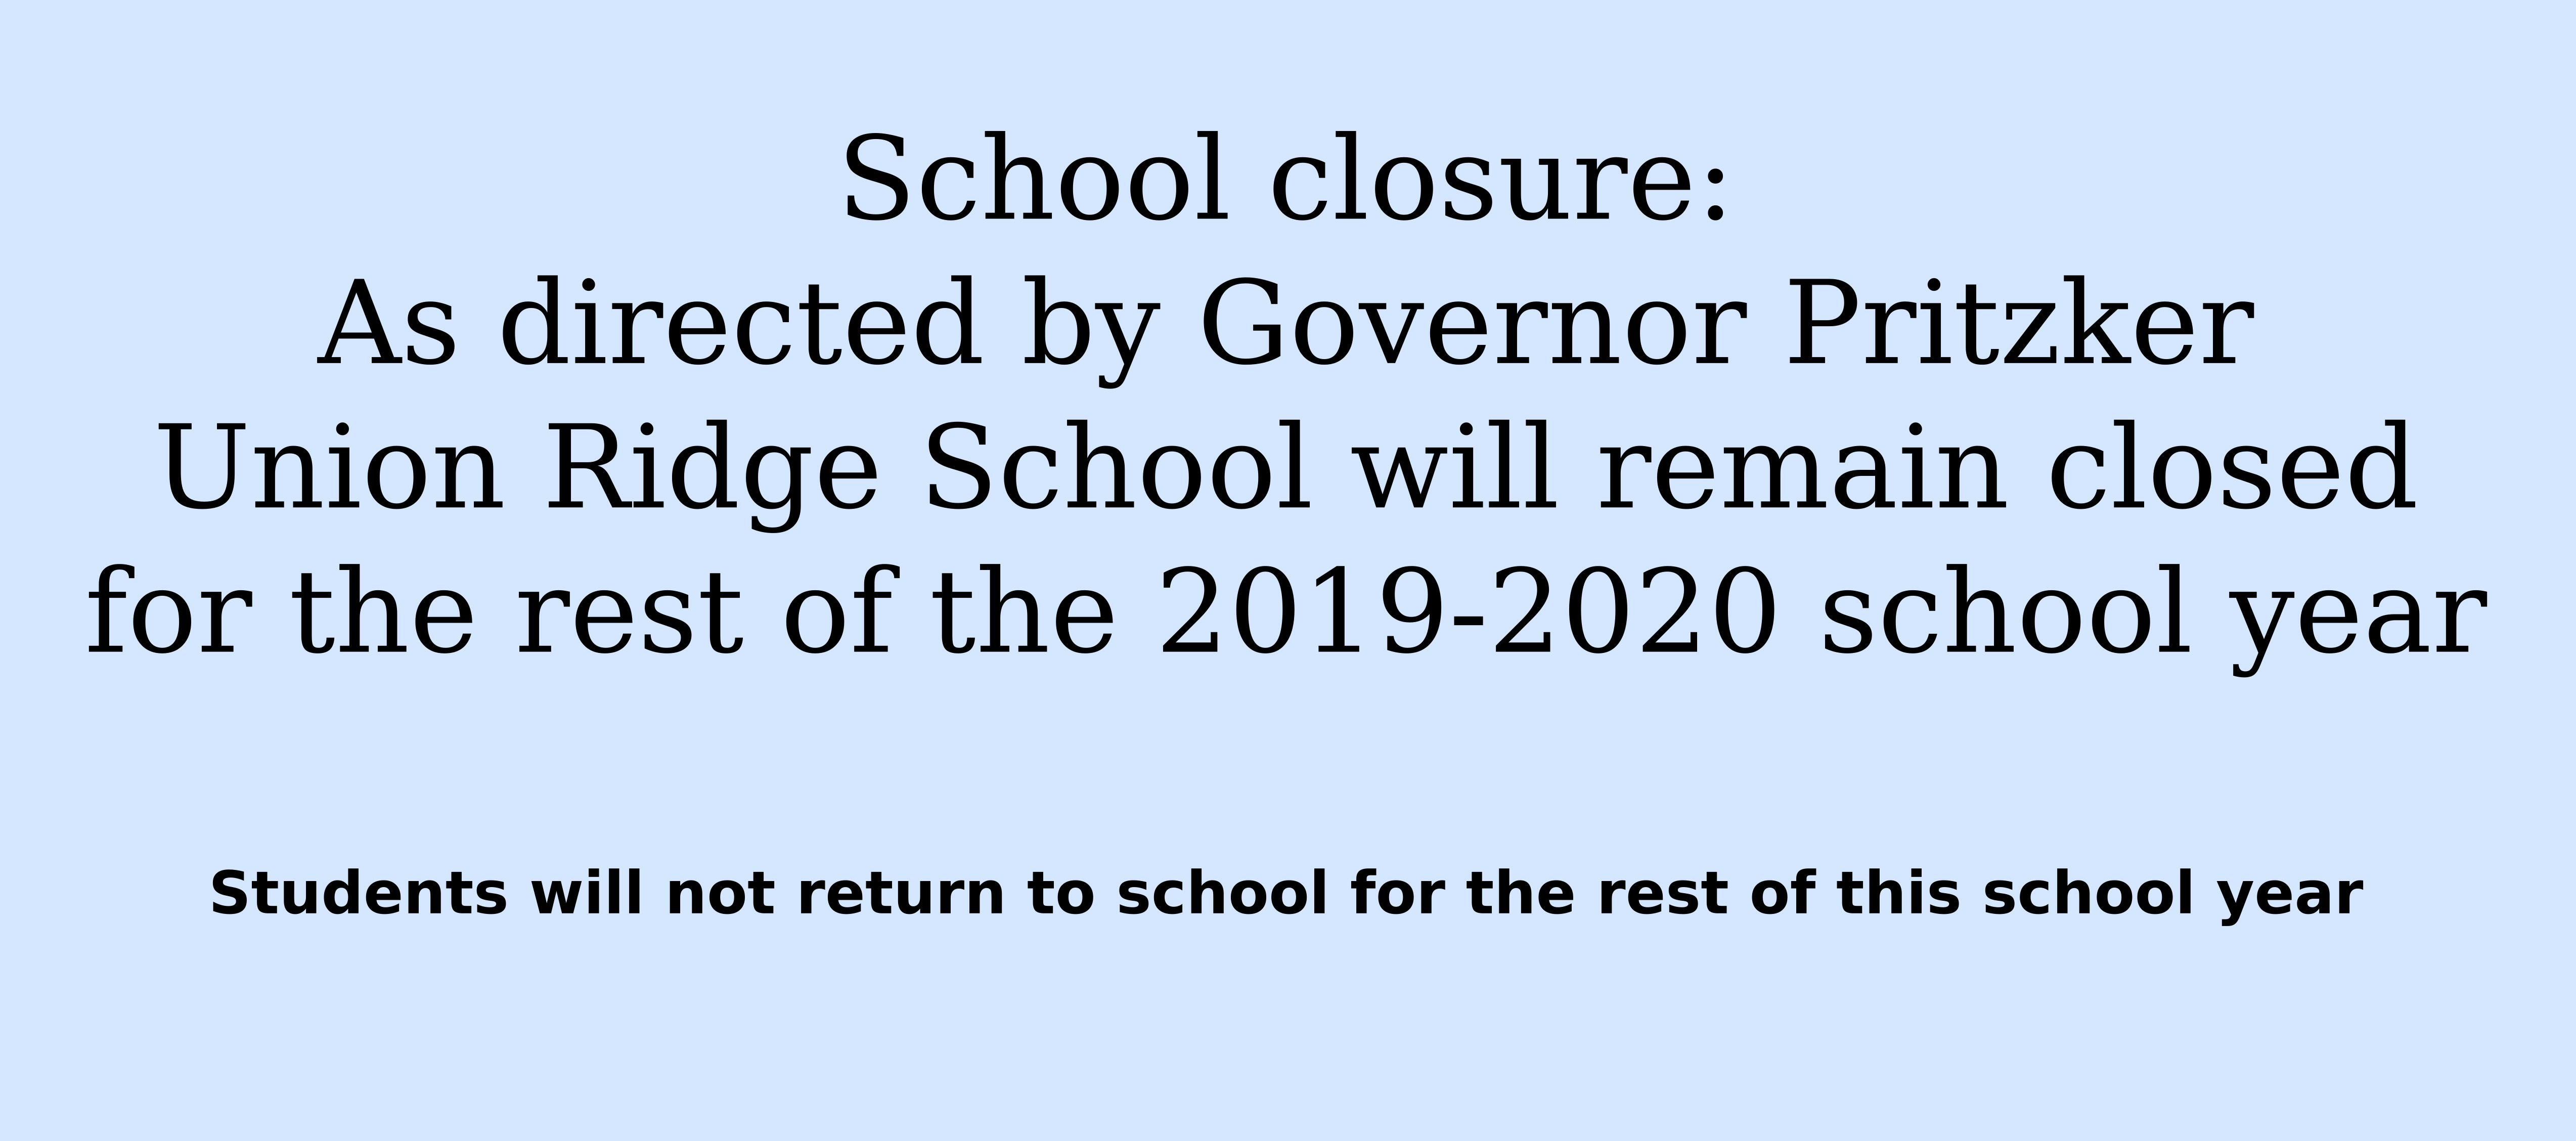 Students will not return to school for the rest of this school year.